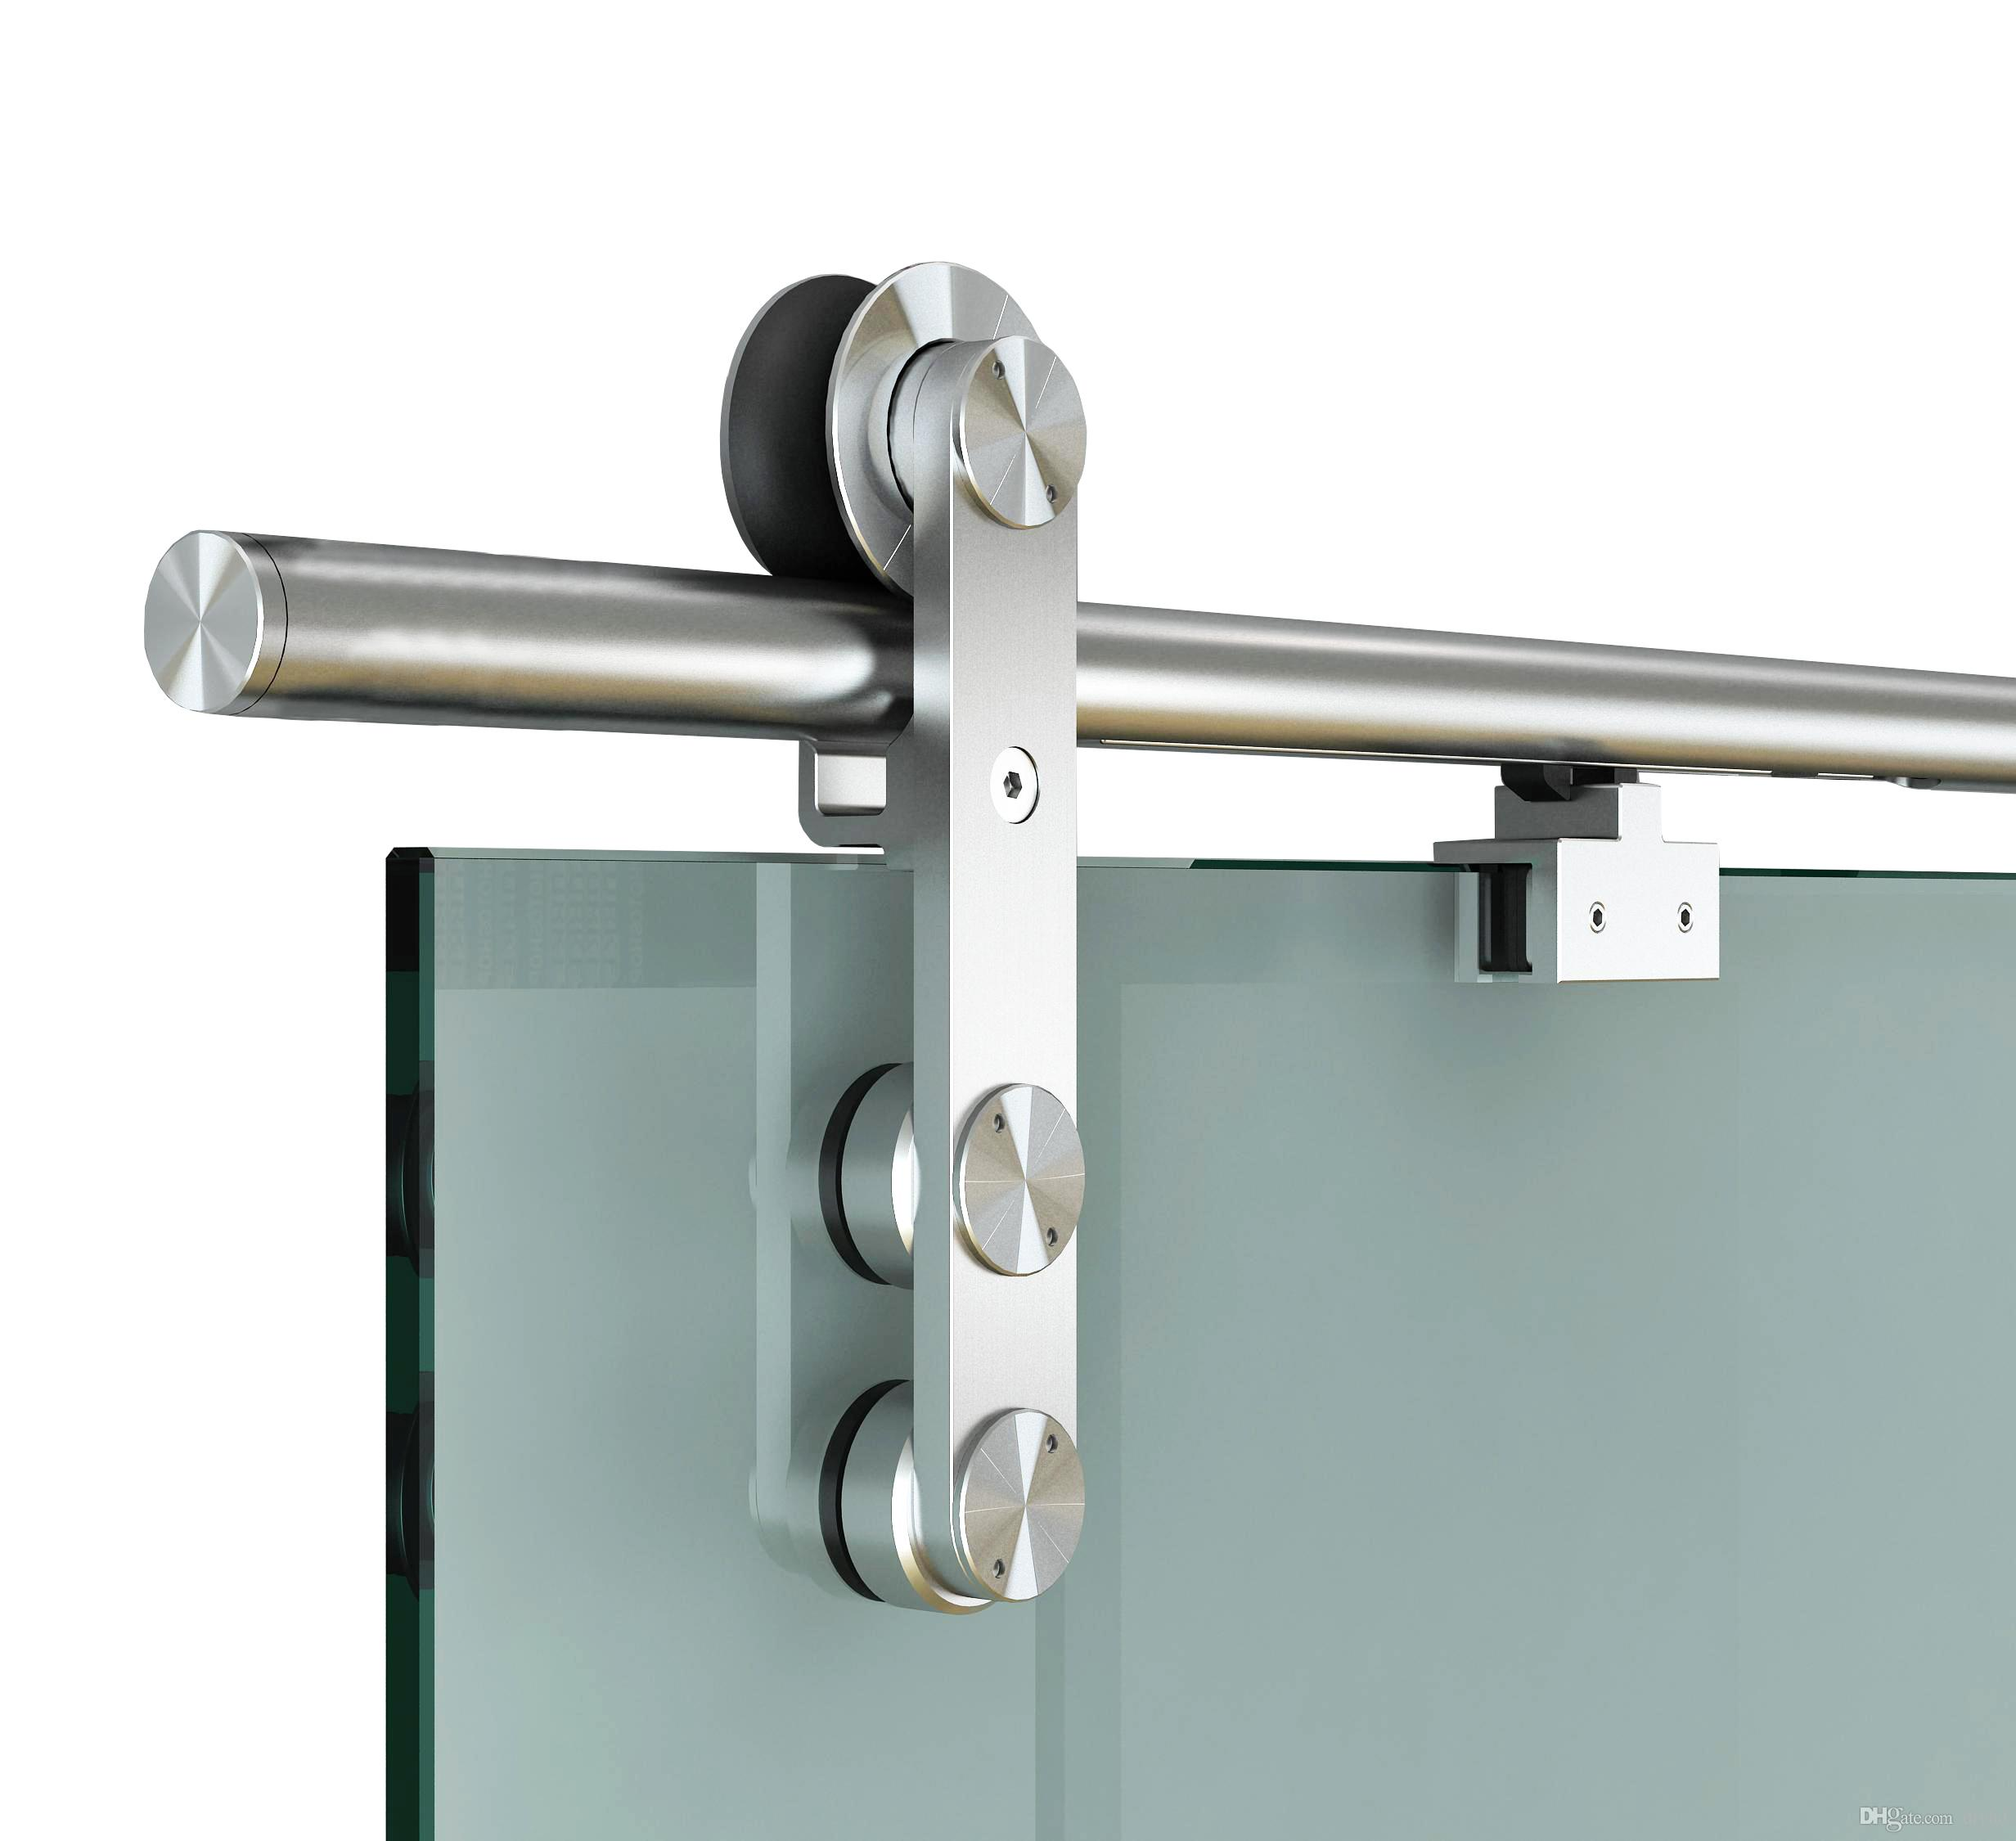 Diyhd 6 6ft Soft Close Glass Barn Door Hardware Stainless Steel Two Sides Soft Close Mechanism Office Glass Sliding Door Track With One Side